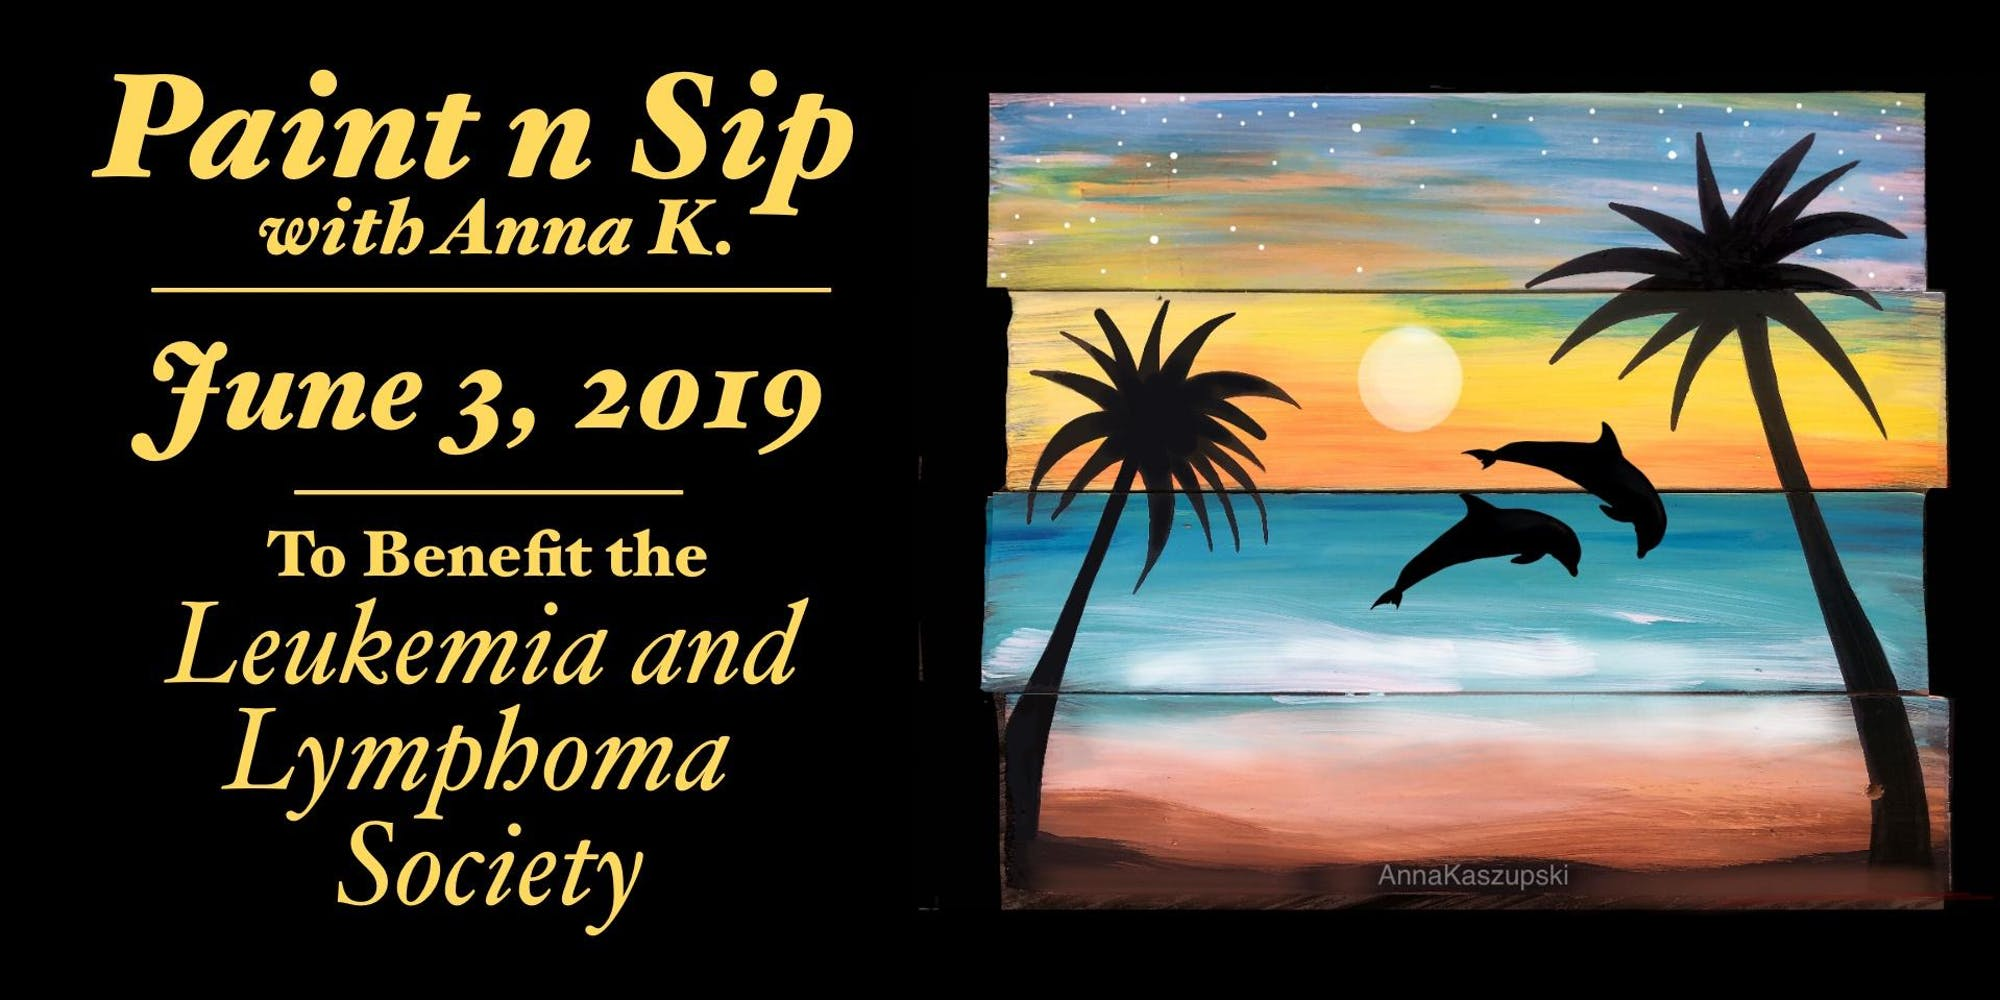 Paint n Sip Party for the Leukemia & Lymphoma Society